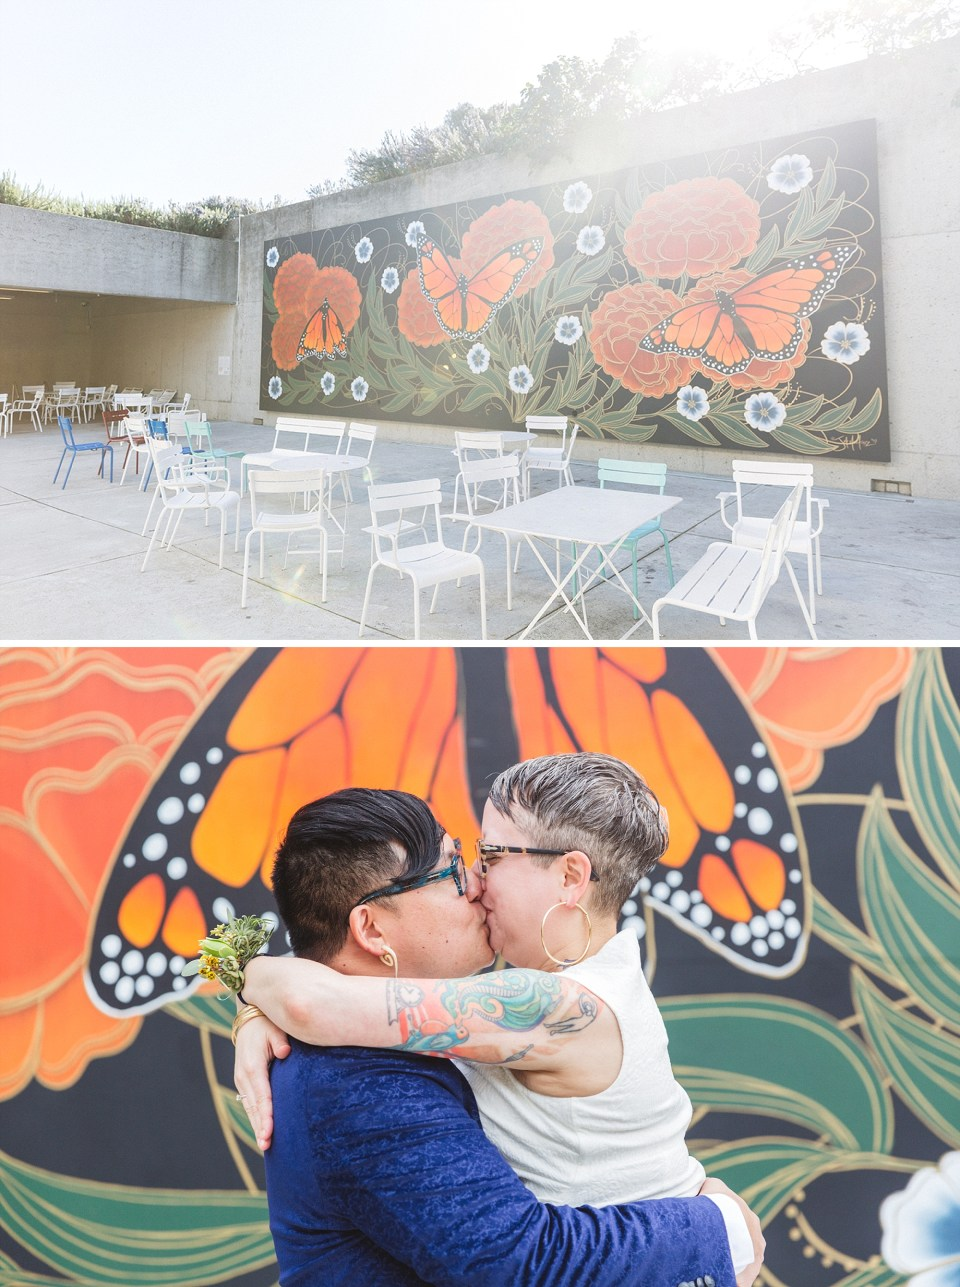 couple marrying at oakland wedding venue omca with butterfly mural in background